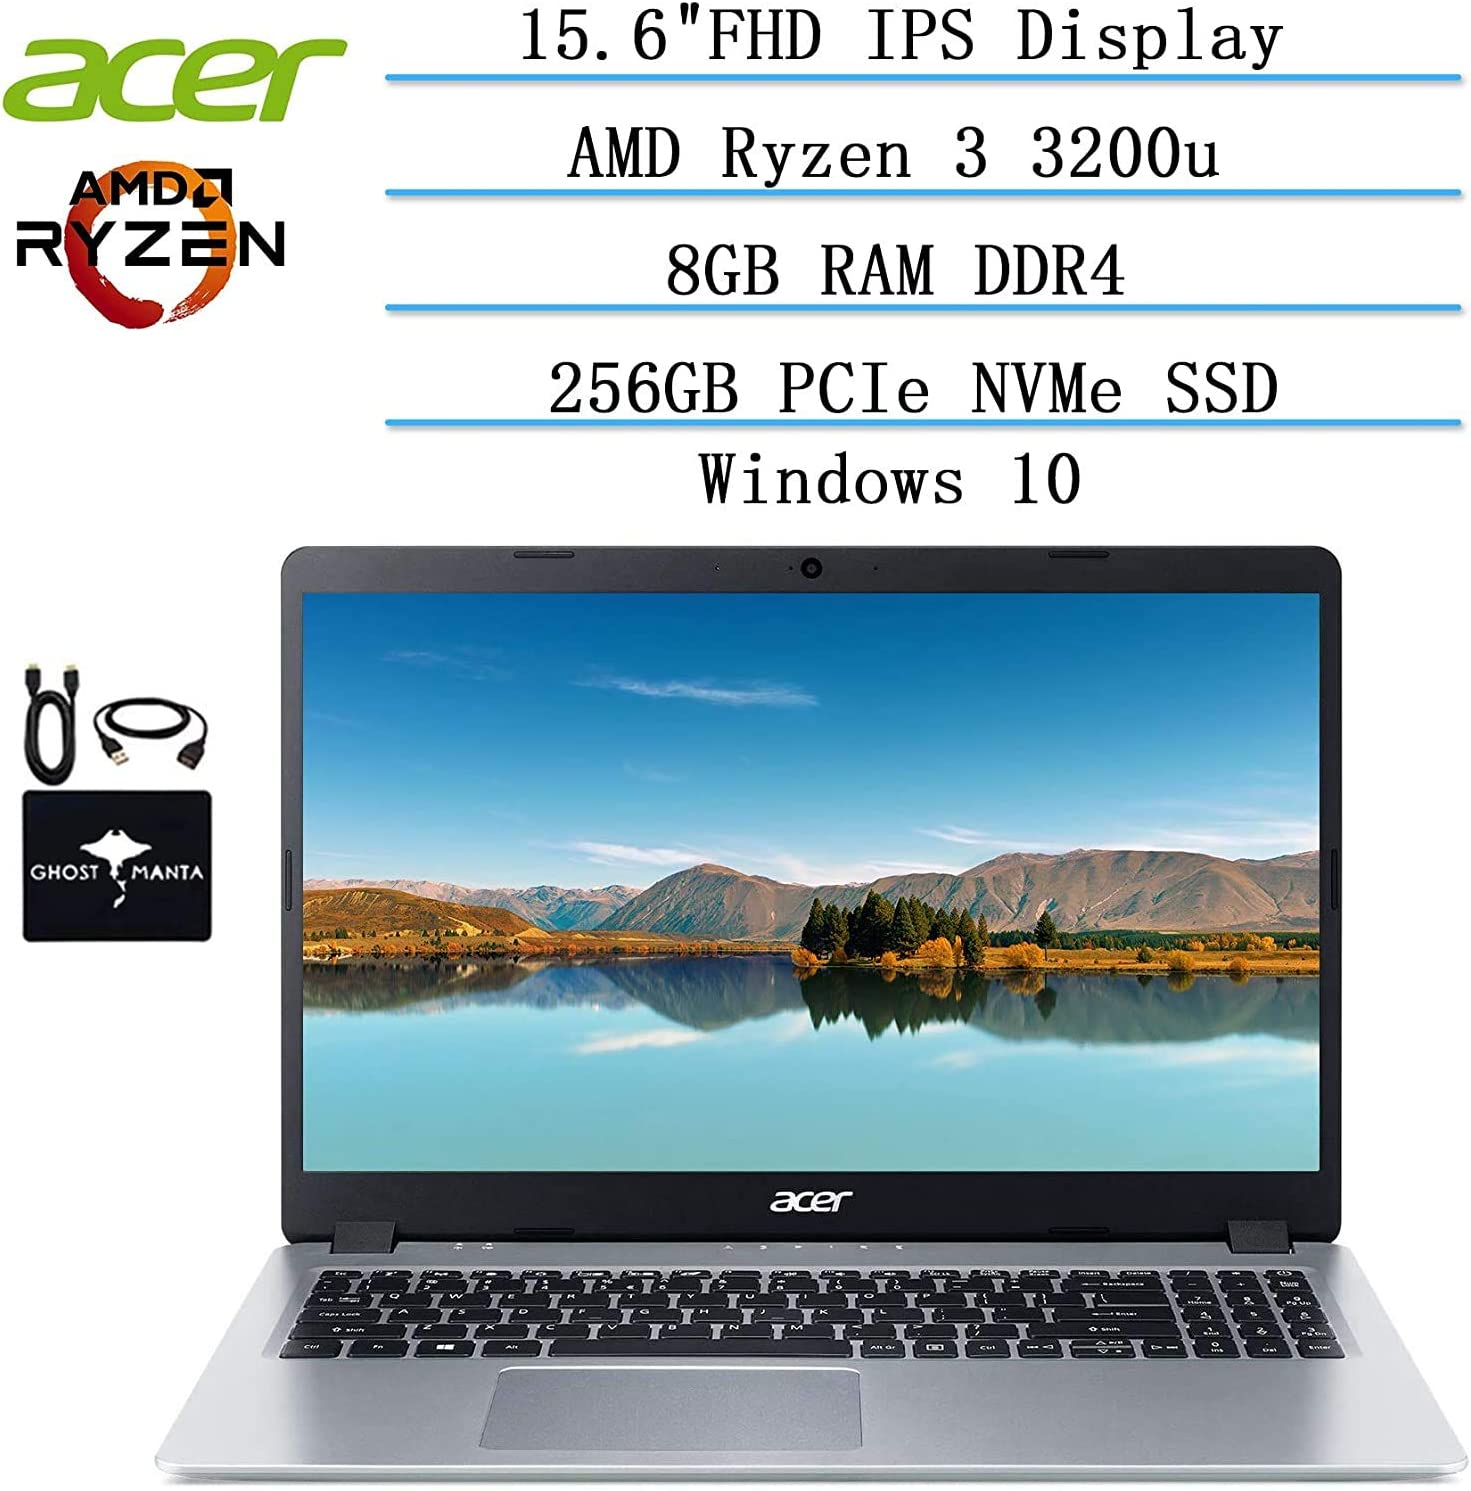 "2020 Newest Acer Aspire 5 Slim Laptop 15.6"" FHD IPS Display, AMD Ryzen 3 3200u-Dual Core (up to 3.5GHz), Vega 3 Graphics, 8GB RAM DDR4, 256GB PCIe SSD, Win10 w/Ghost Manta Accessories"